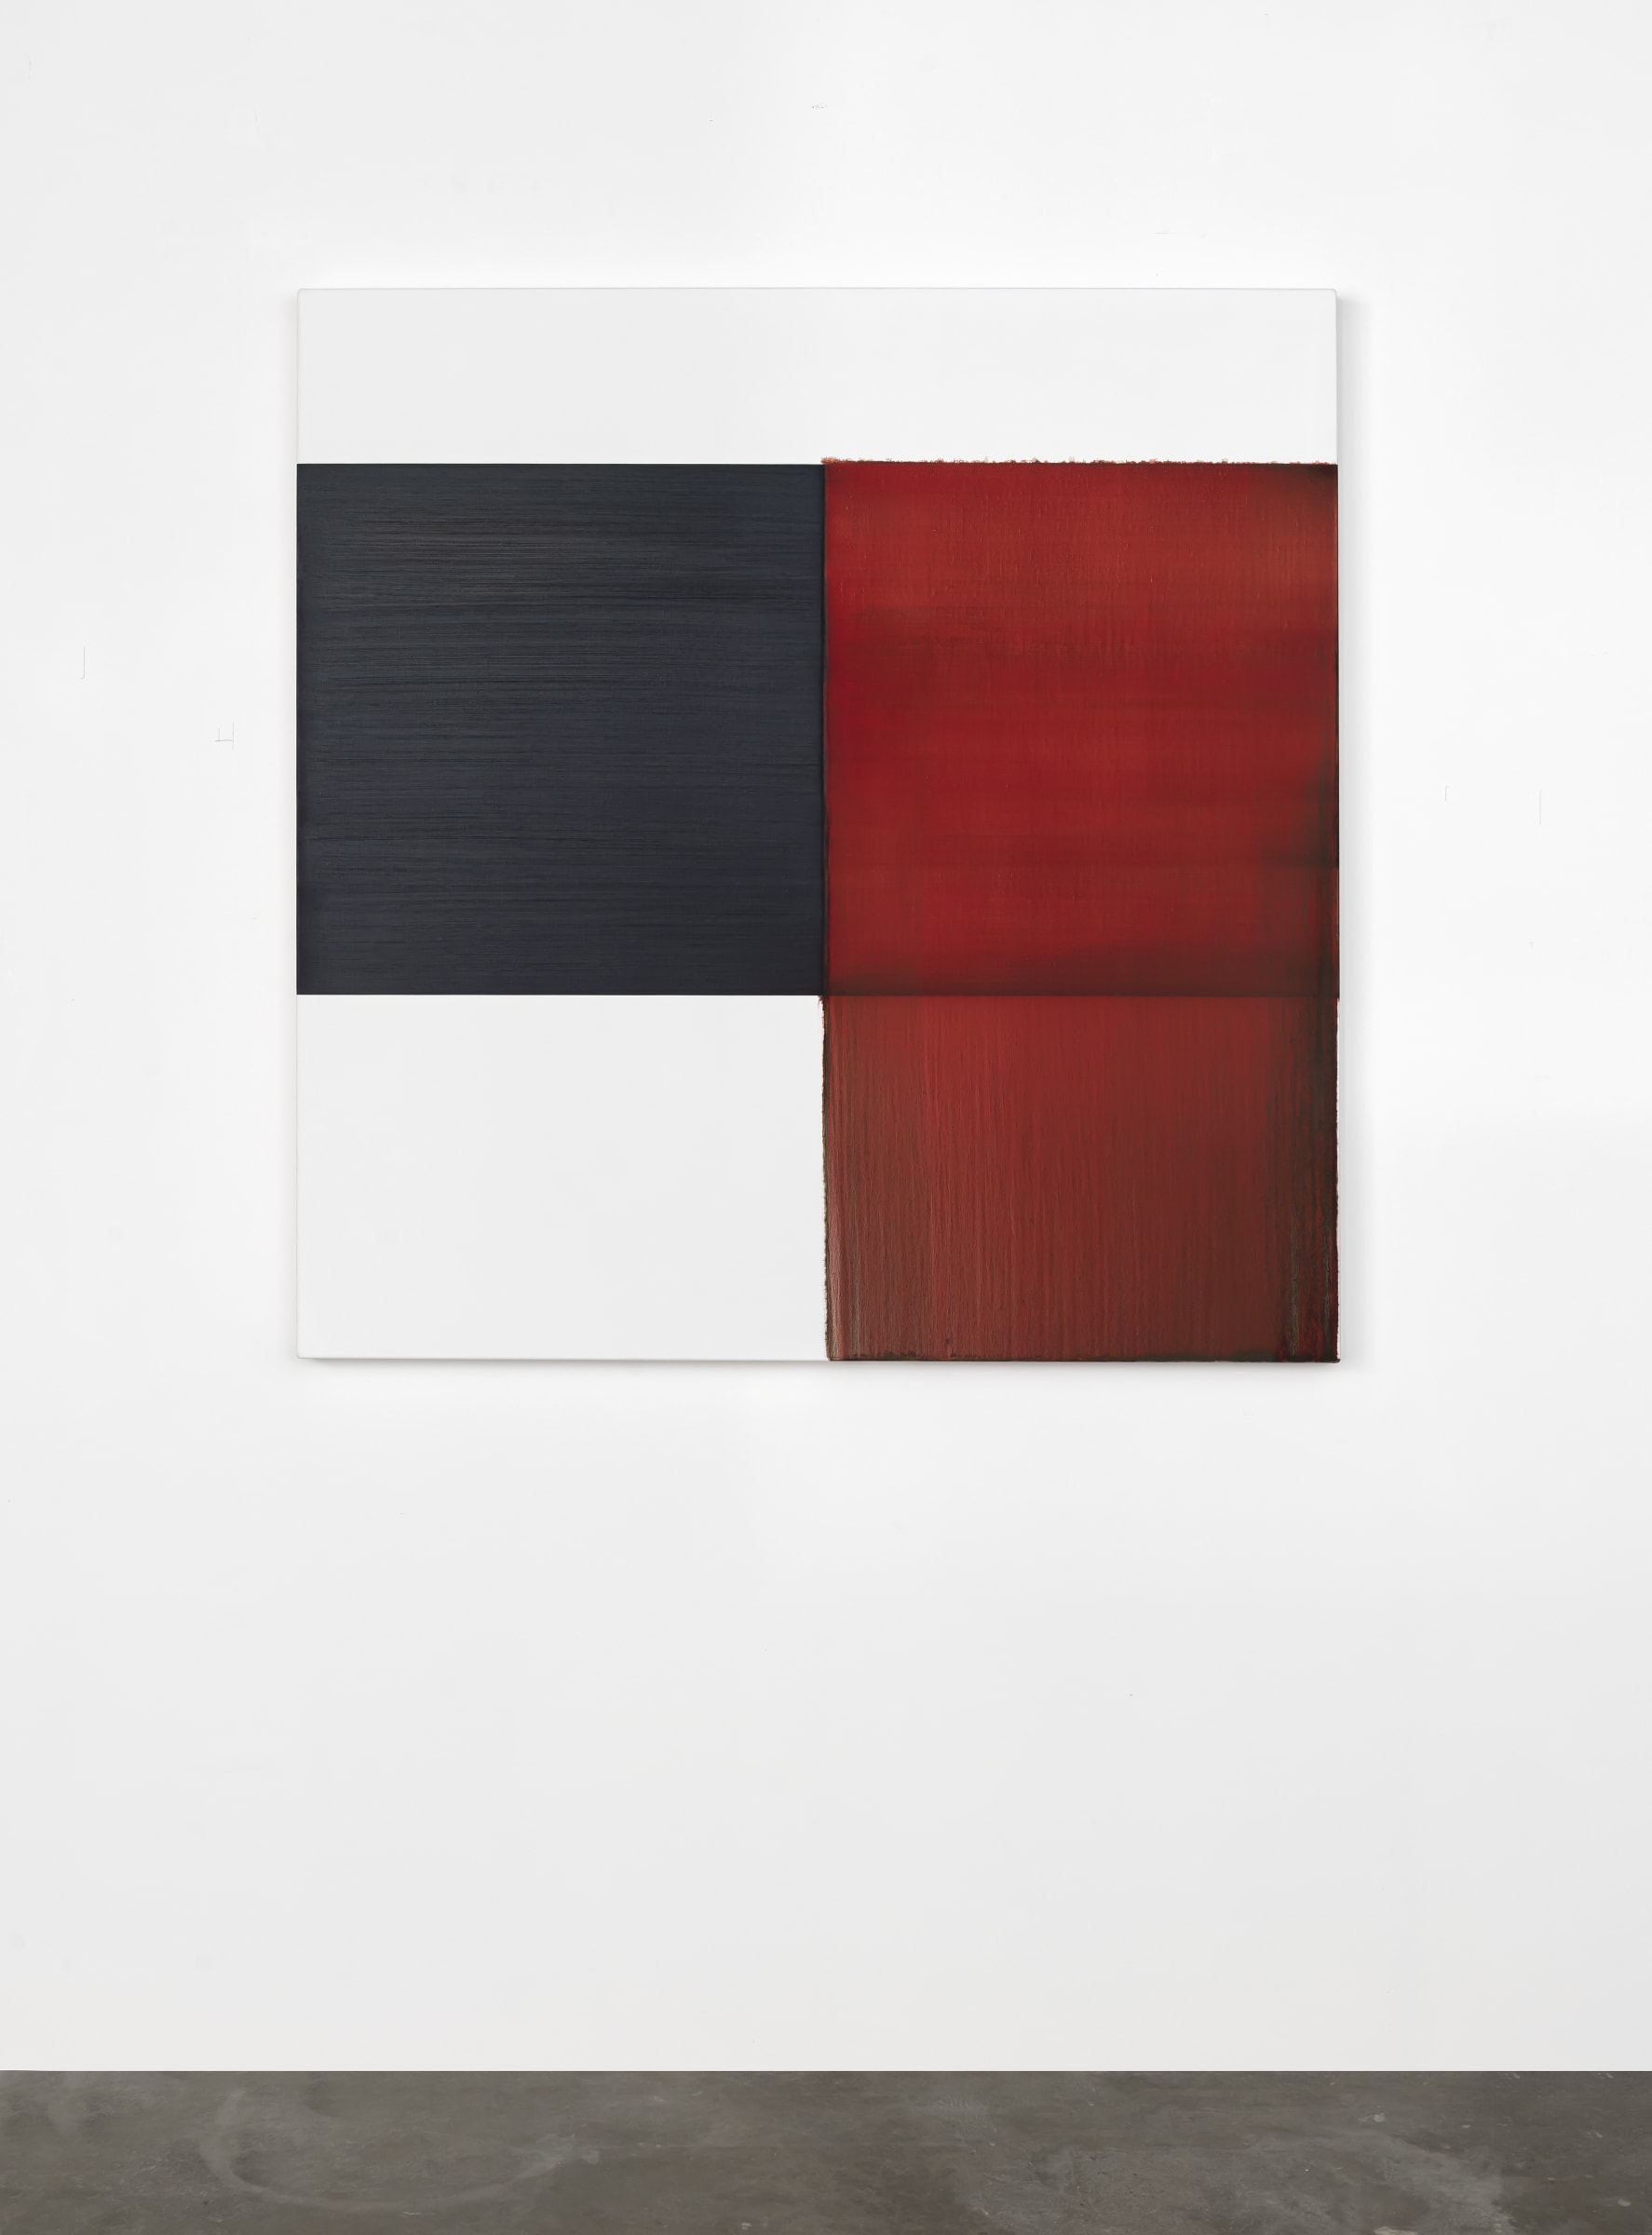 "<span class=""link fancybox-details-link""><a href=""/artists/33-callum-innes/works/17630/"">View Detail Page</a></span><div class=""artist""><strong>CALLUM INNES</strong></div> <div class=""title""><em>Exposed Painting Crimson Lake</em>, 2020</div> <div class=""signed_and_dated"">signed on back</div> <div class=""medium"">oil on linen</div> <div class=""dimensions"">110 x 107 cm</div><div class=""copyright_line"">Copyright The Artist</div>"